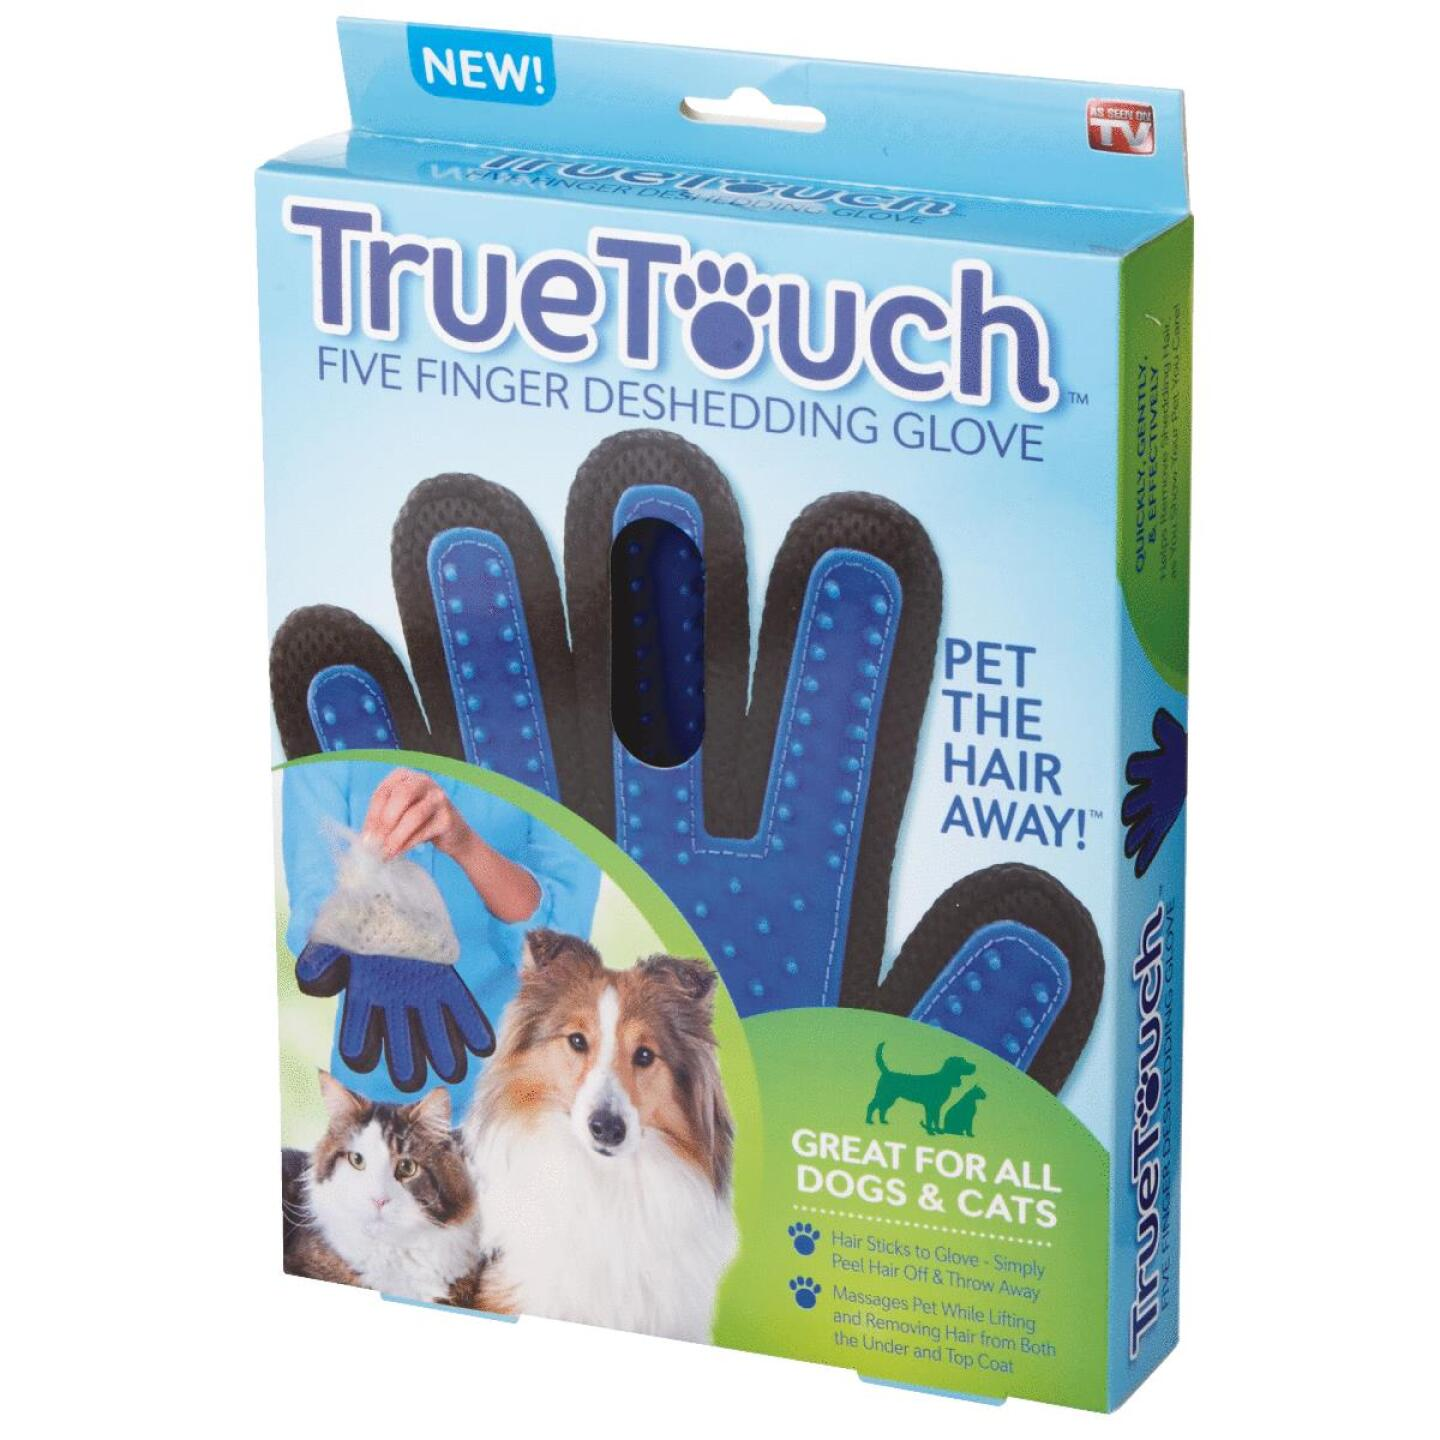 True Touch Silicone Tip Five Finger Deshedding Pet Glove Image 4